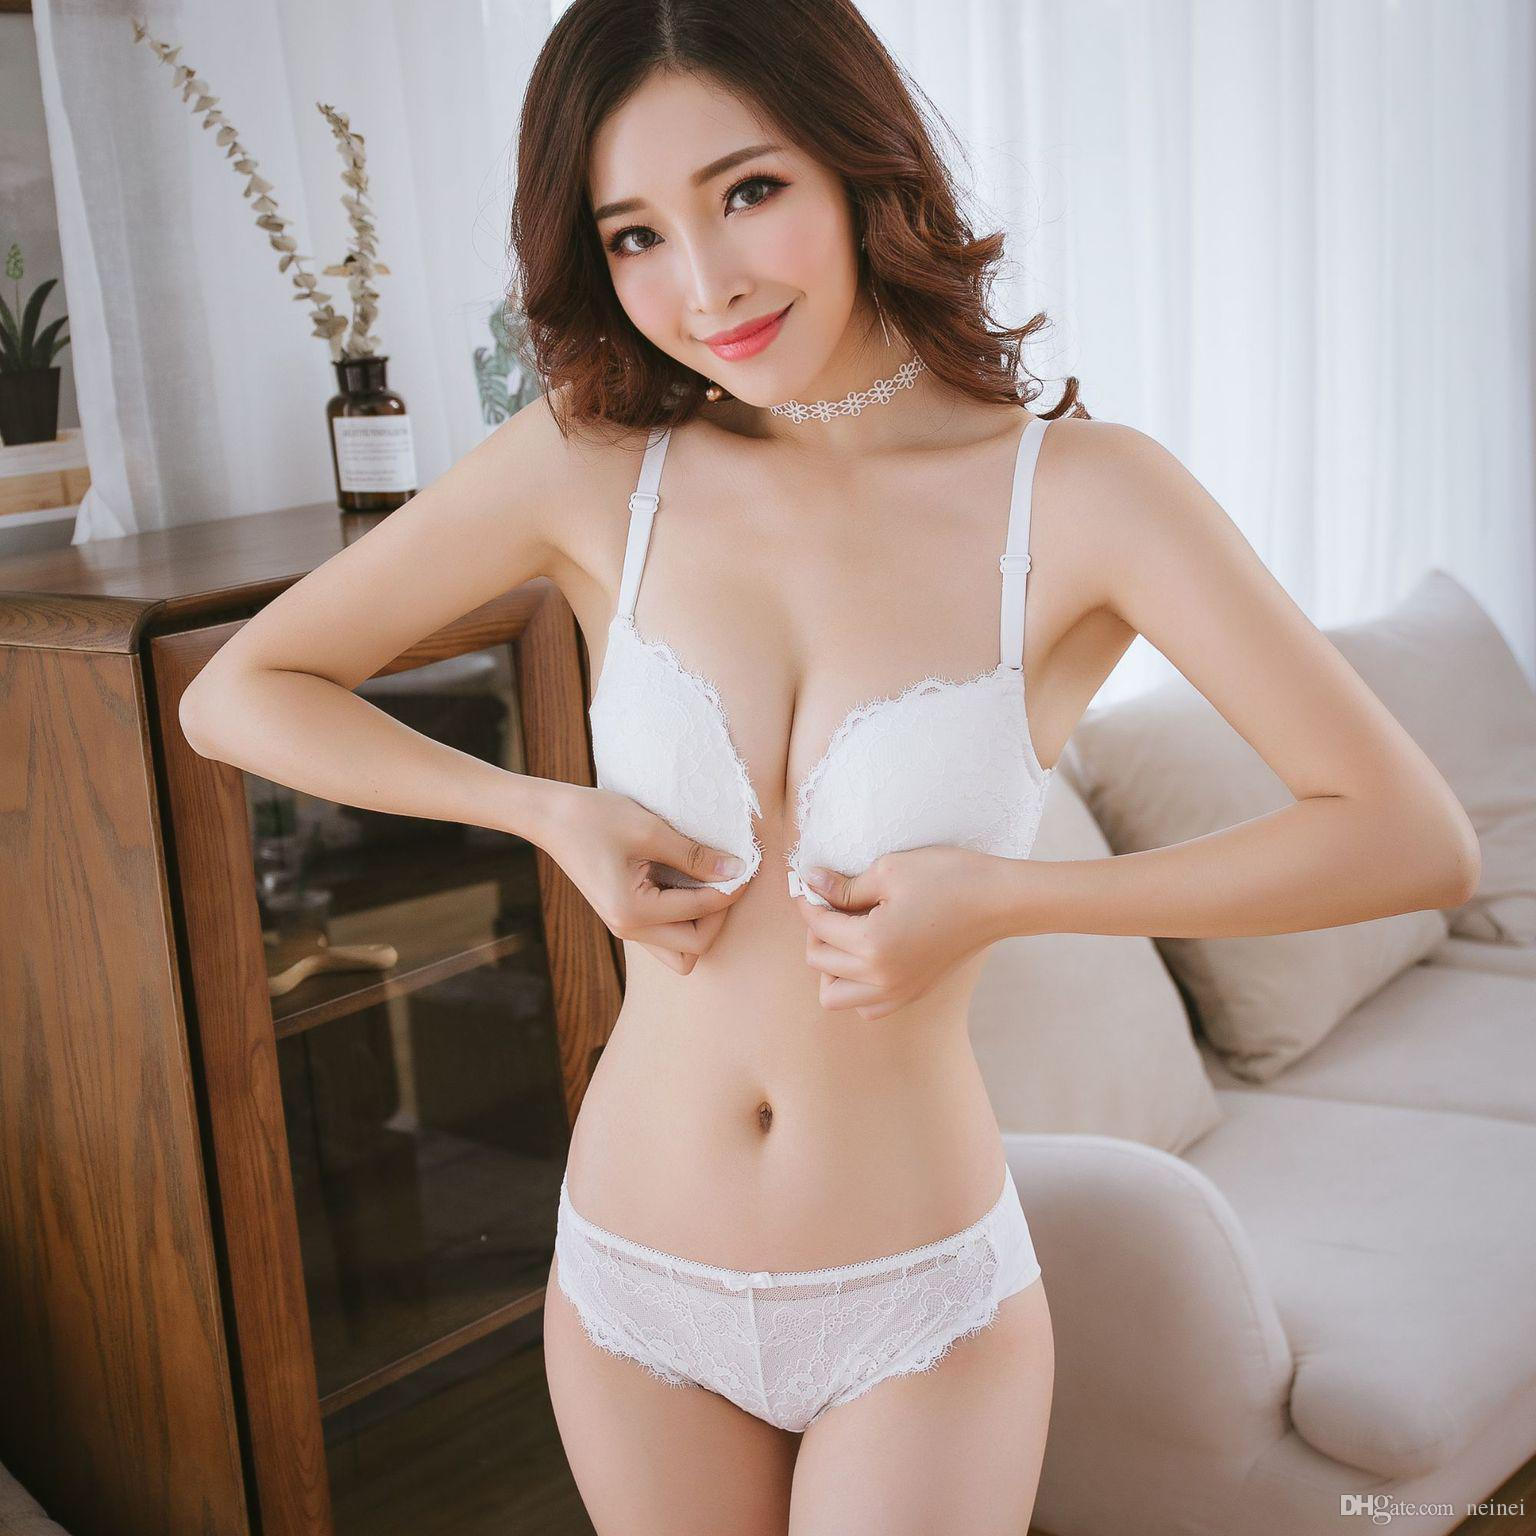 7f6dfeff5fbd9 2019 Sexy Women Bra Set Seamless Bra Front Closure Lace Push Up Bra Panties  Fashion Young Girls Lingerie Suits Wireless Intimates From Neinei